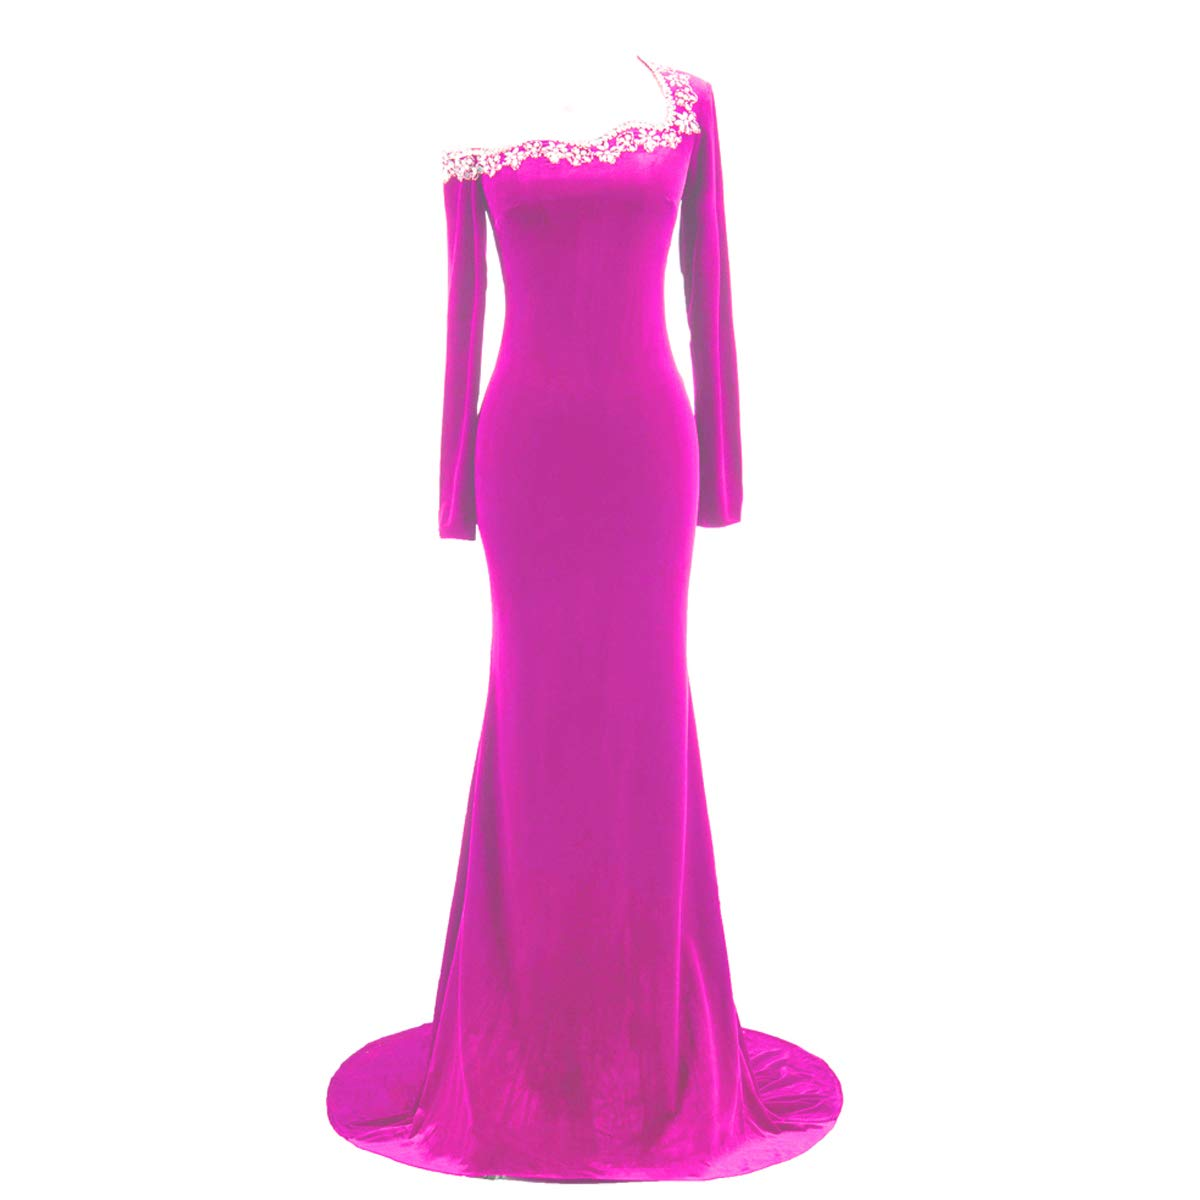 Available at Amazon: TTYbridal Prom Dresses Velvet Long Evening Party Gown with Beading V7